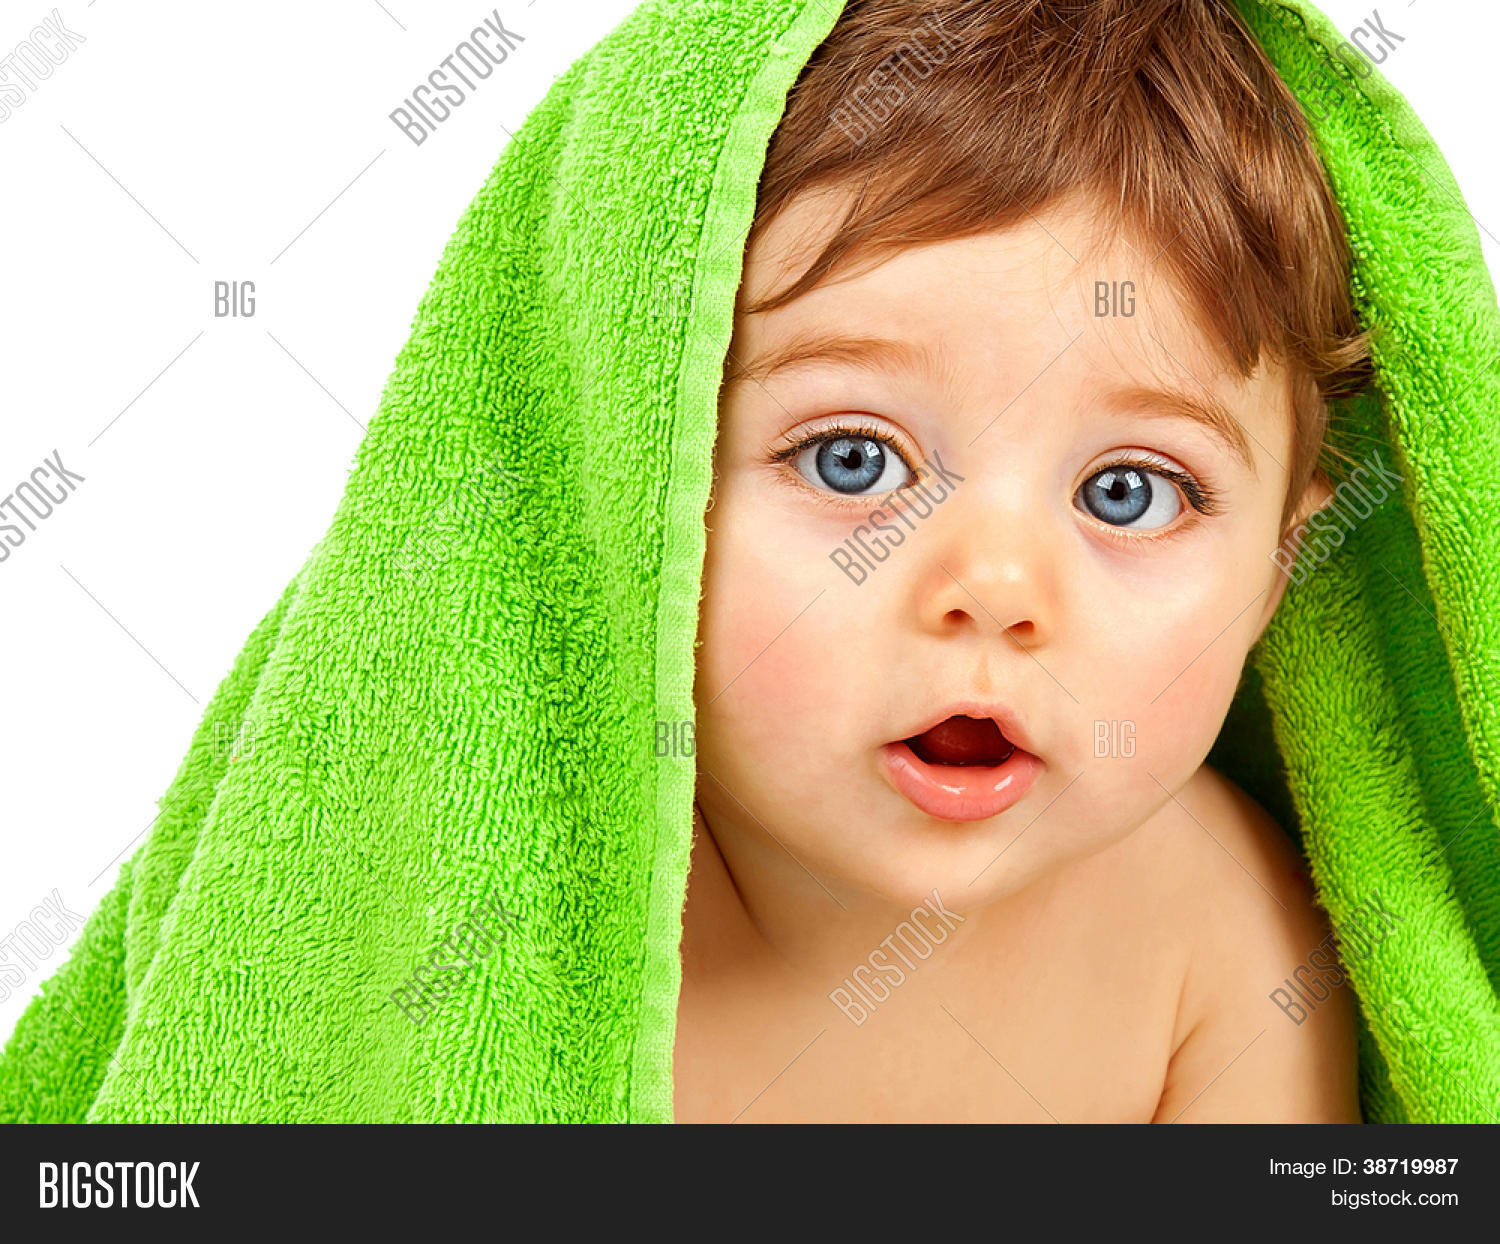 image cute baby boy image & photo (free trial) | bigstock